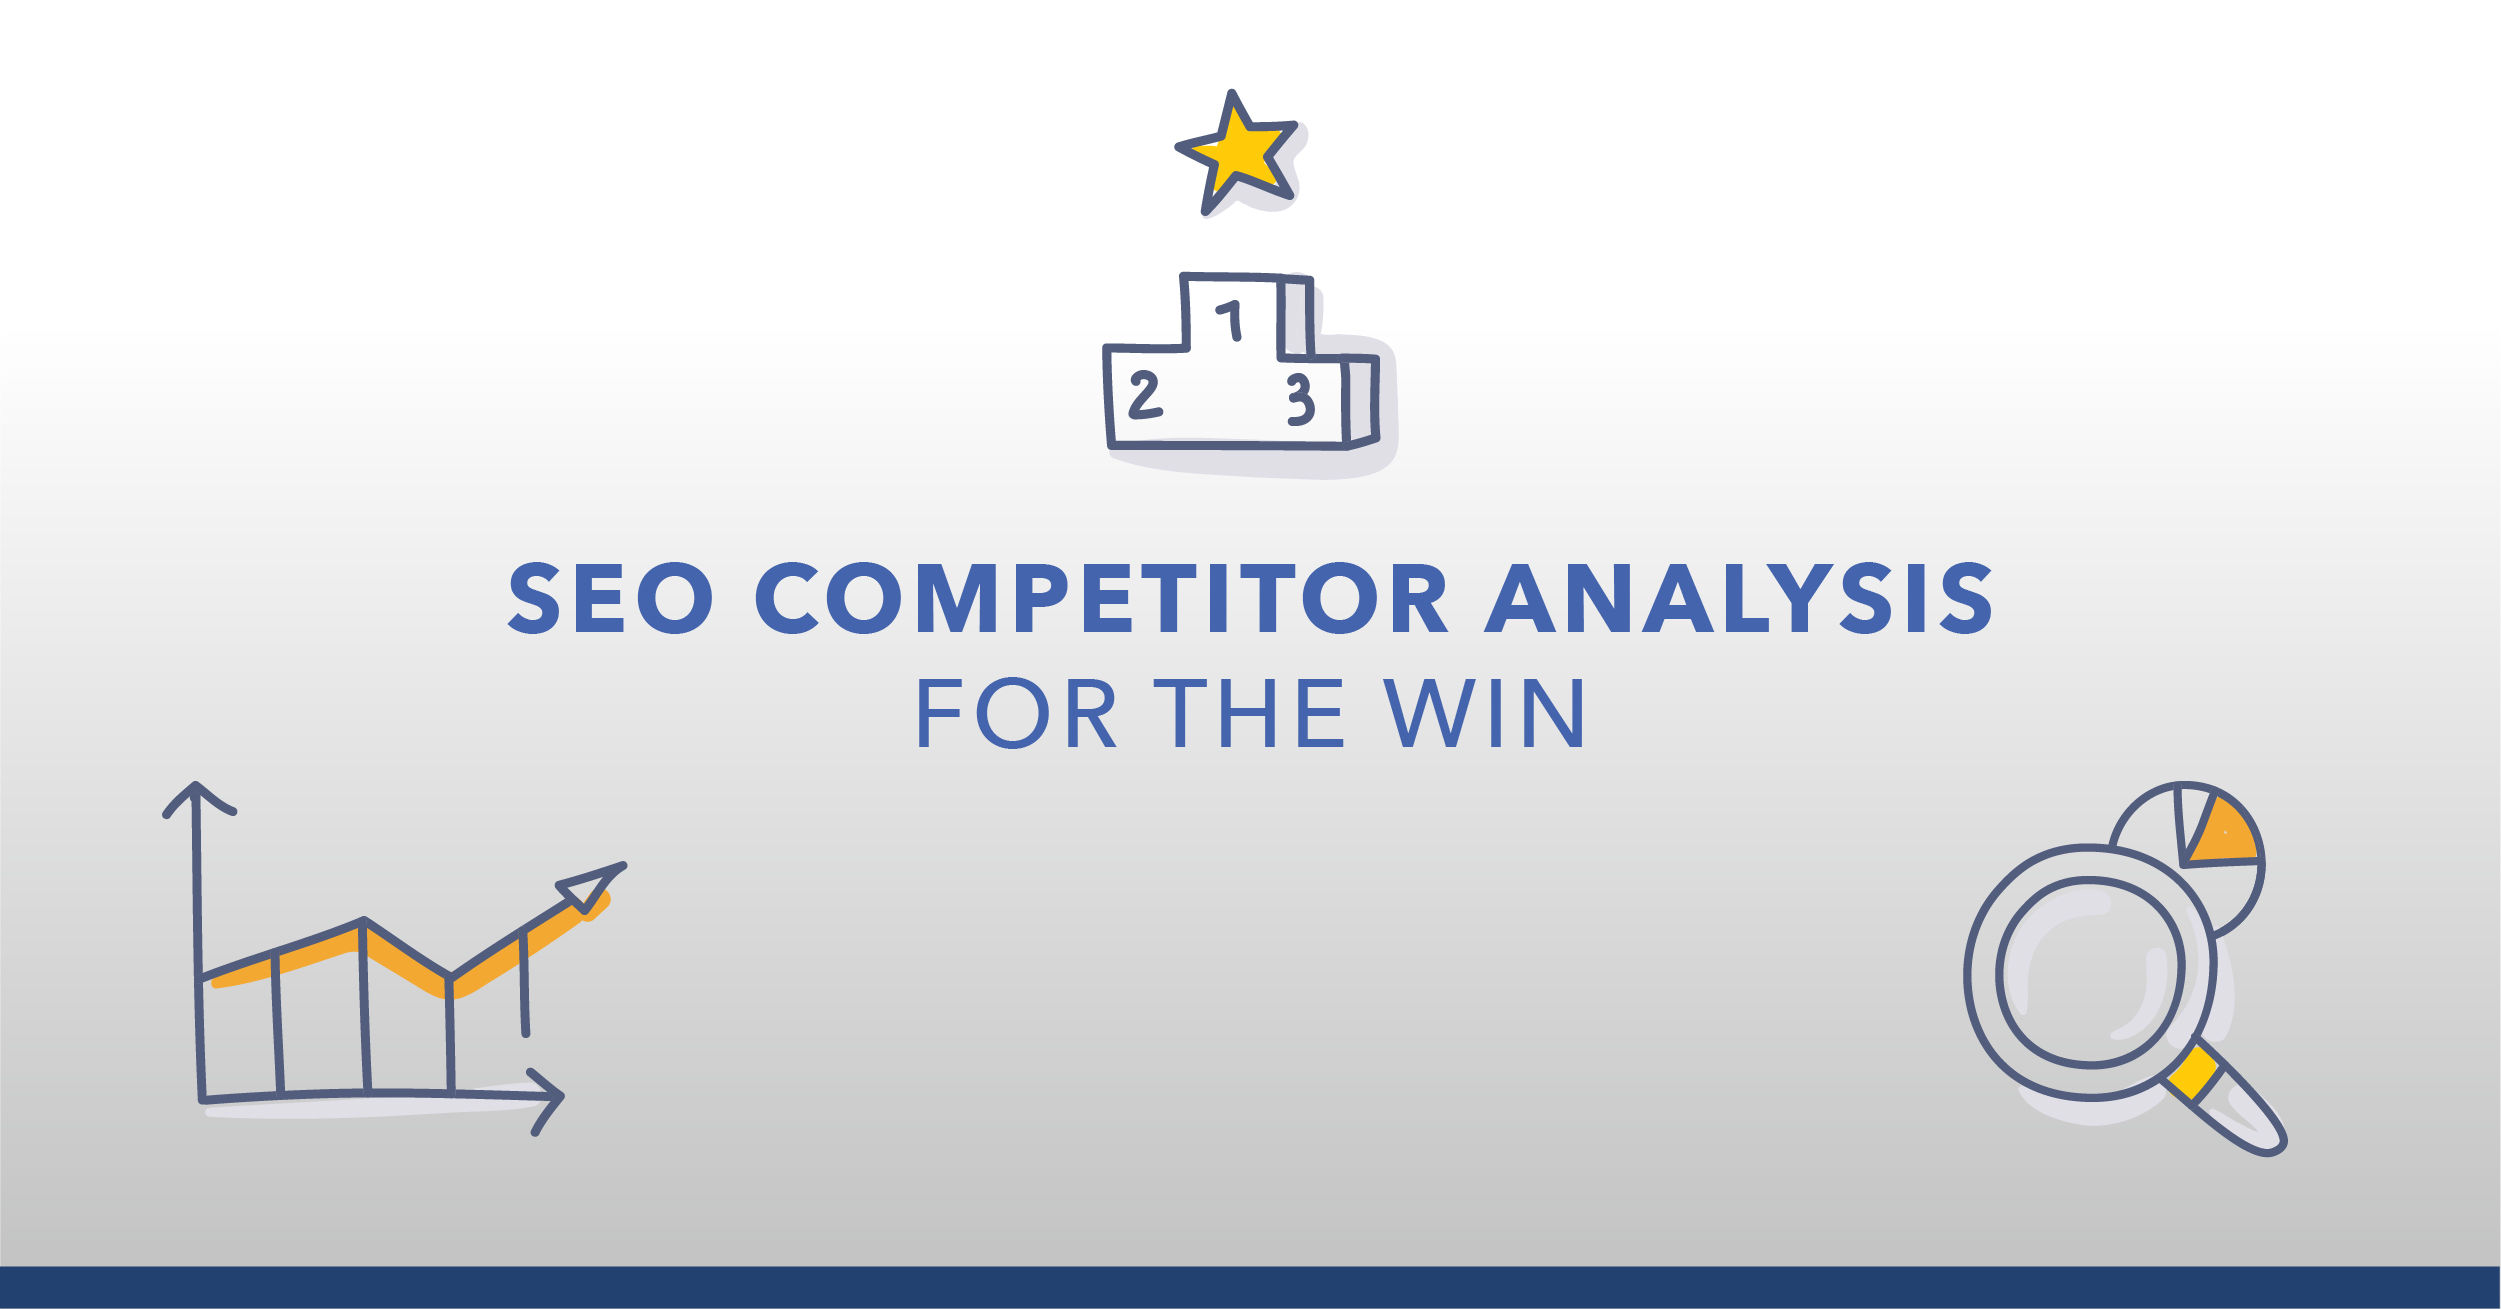 I will provide complete SEO competitor analysis Report